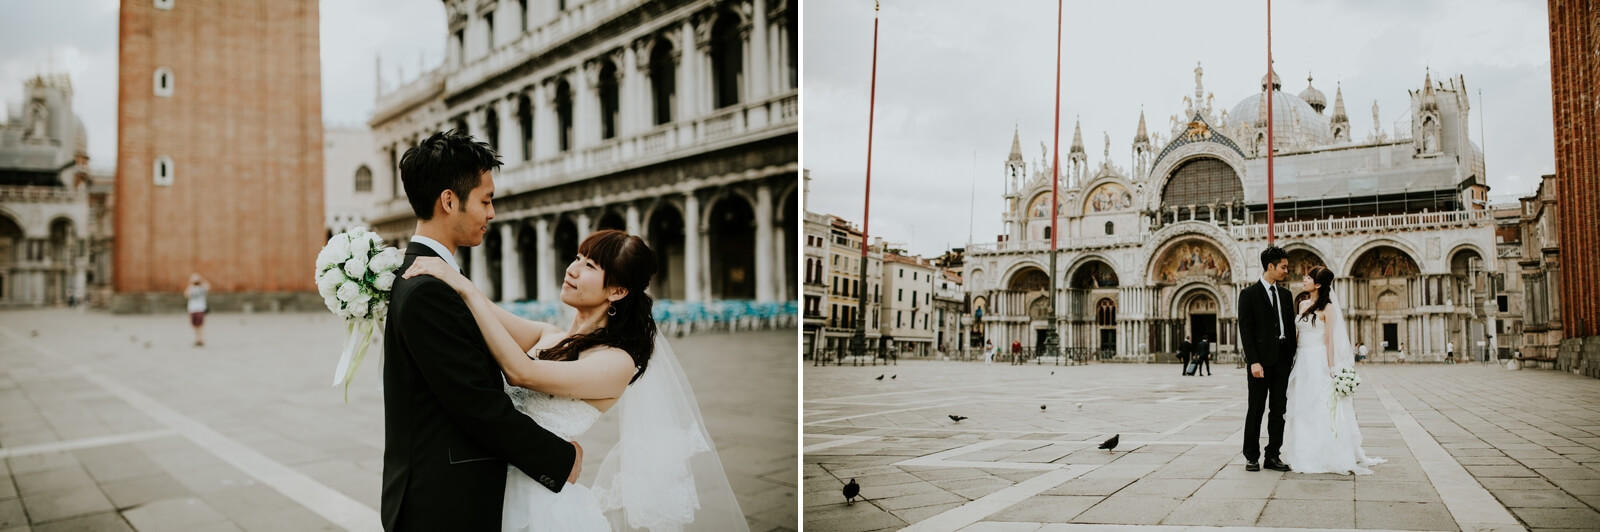 Pre Wedding Photo Venice - Italian Wedding Photographer